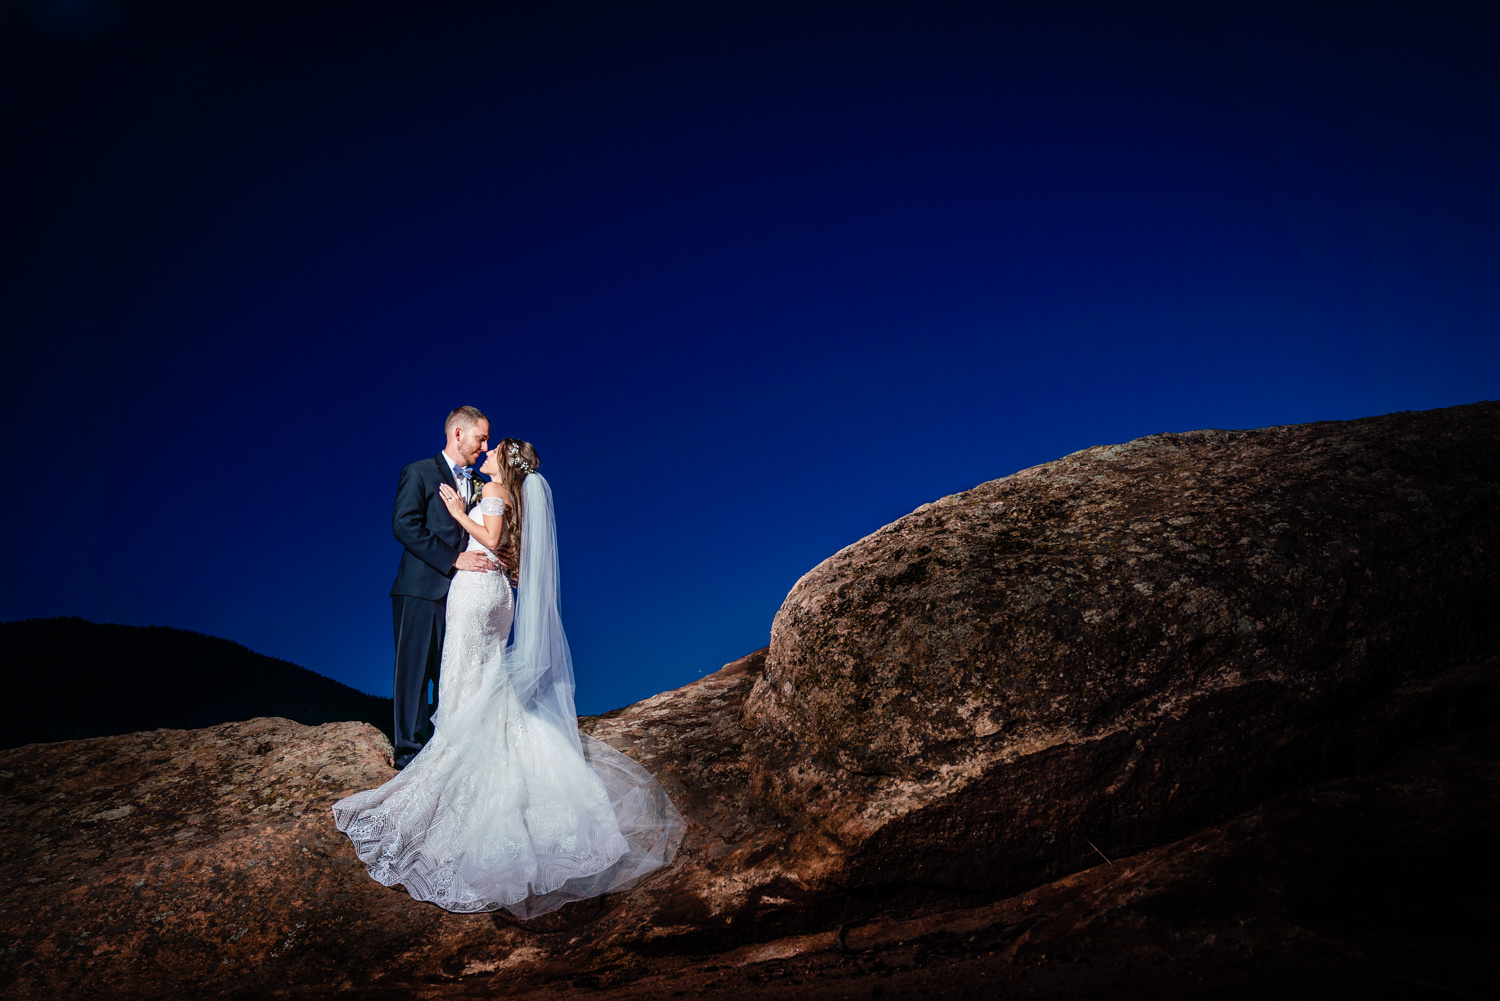 Willow Ridge Manor Wedding | Morrison, Colorado Wedding Photographer | JMGant Photography